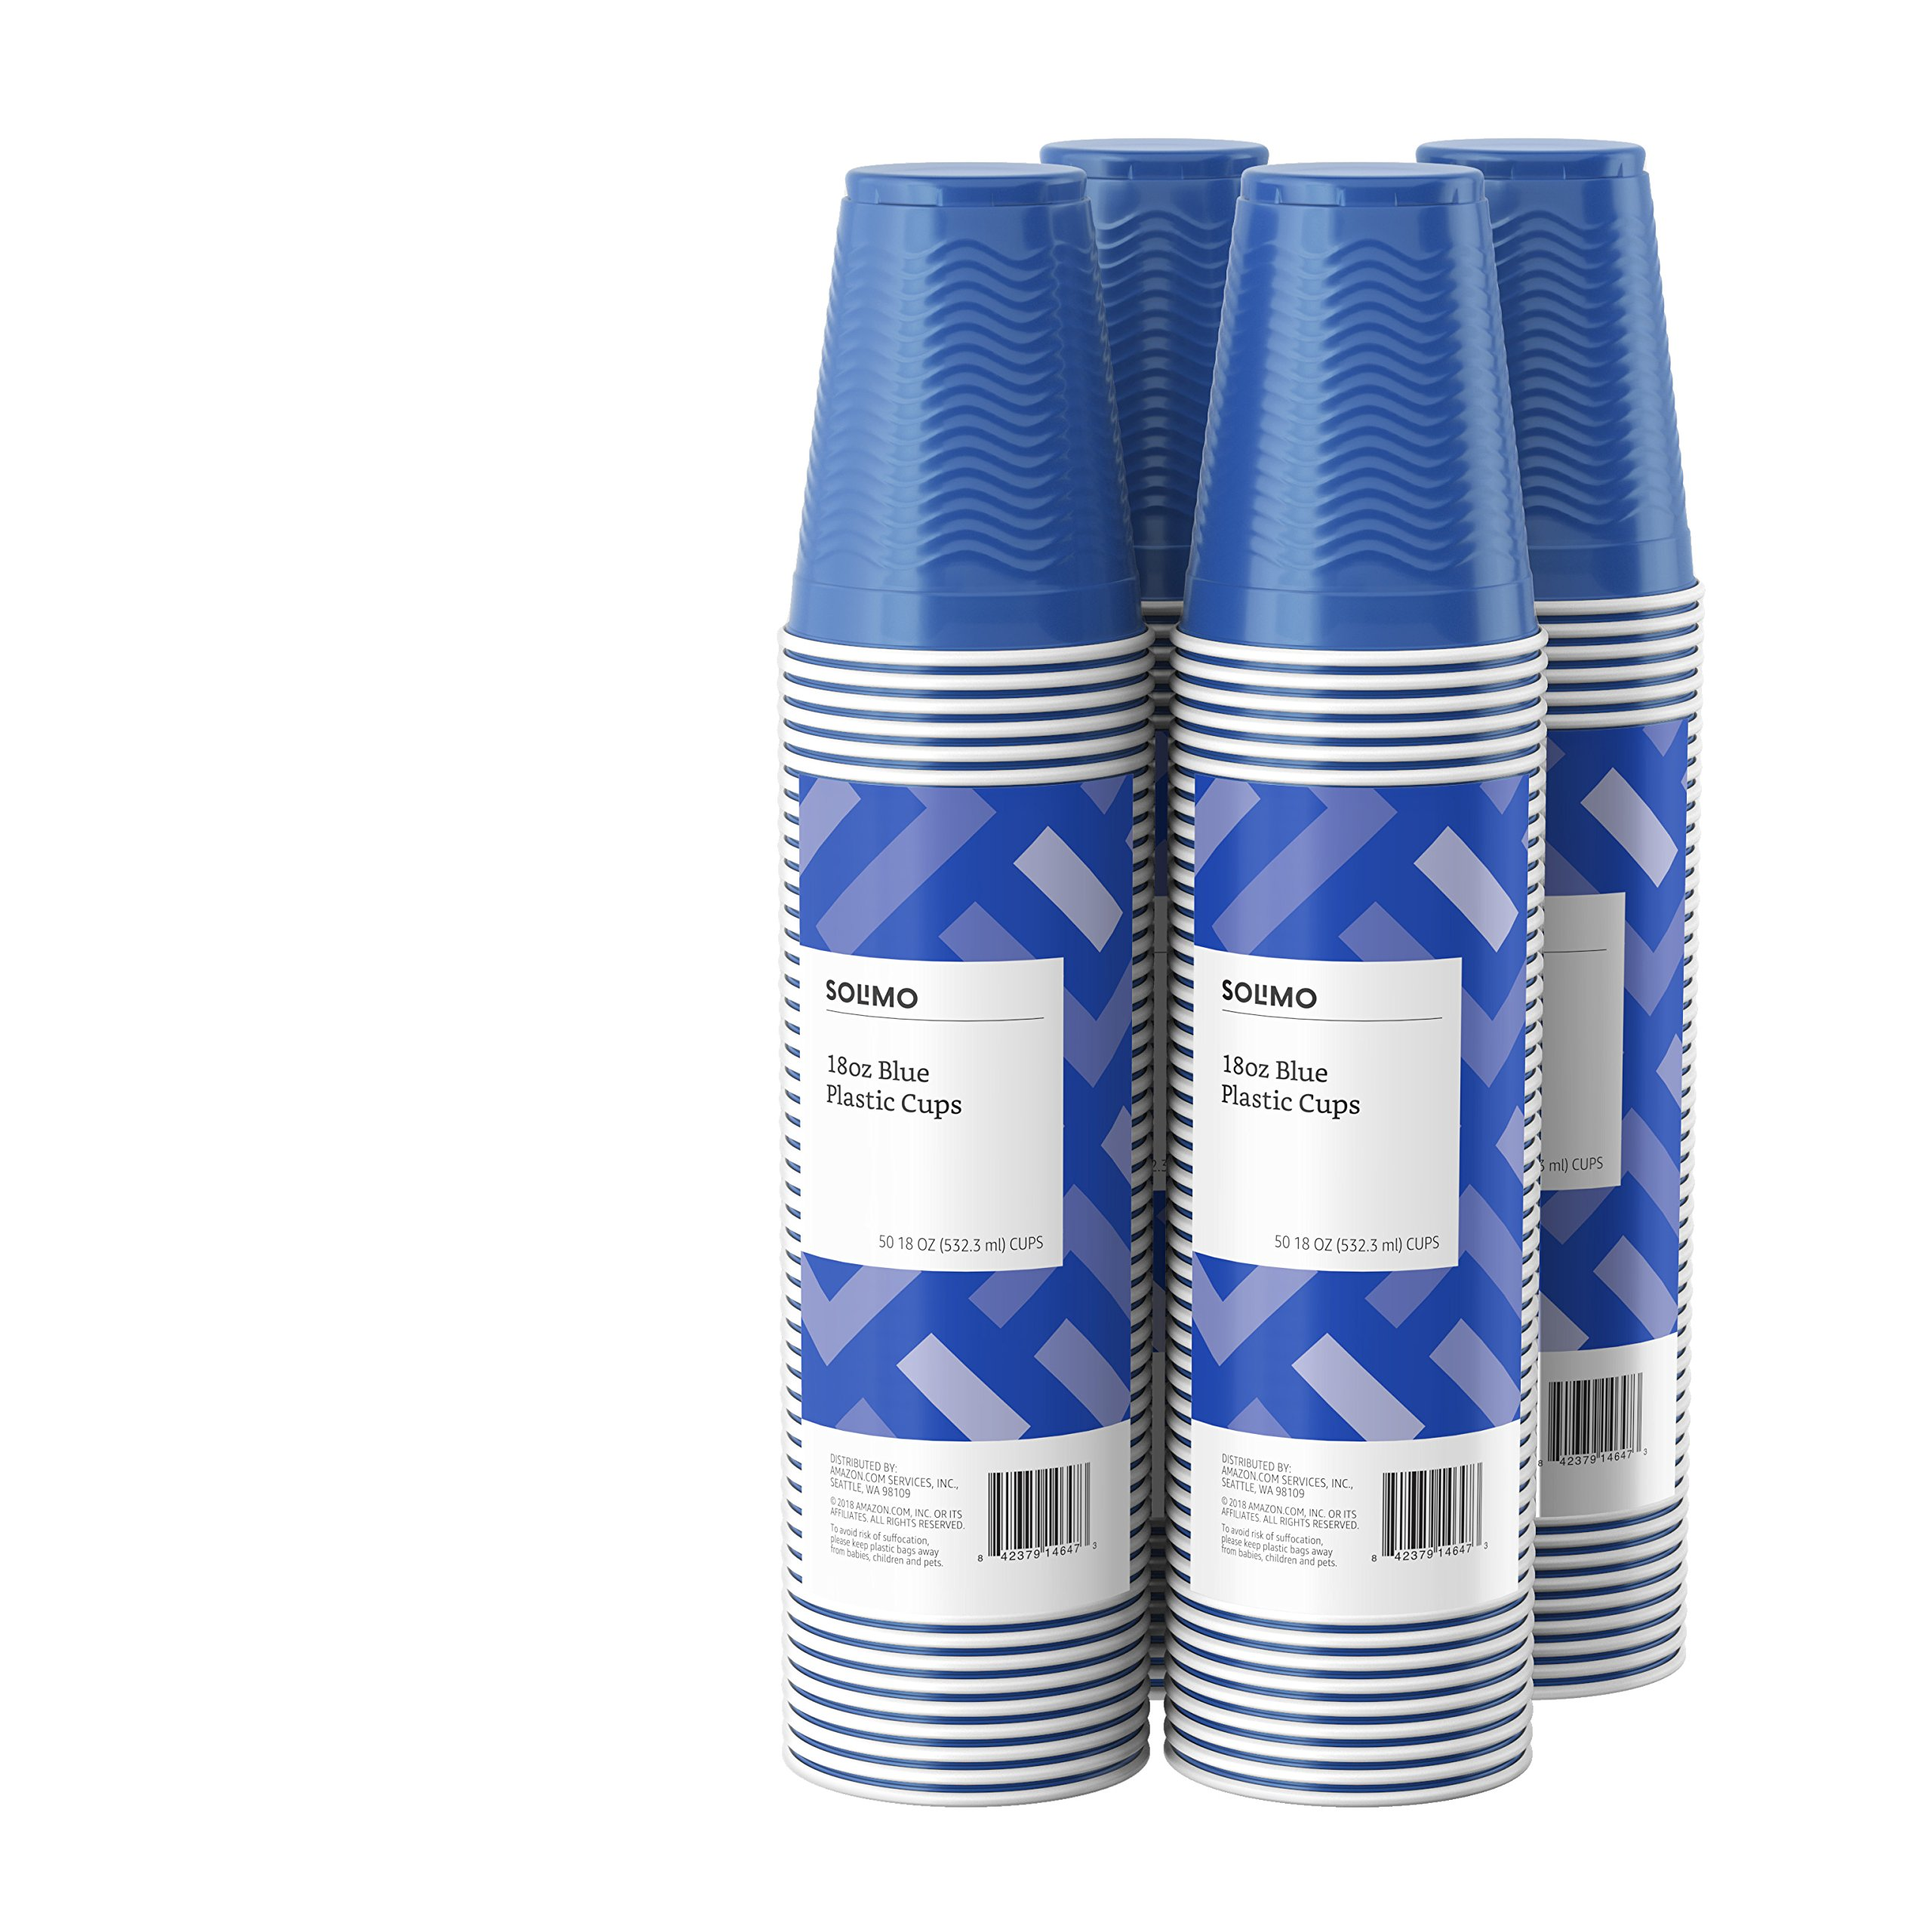 Amazon Brand - Solimo 18oz Disposable Plastic Cups, 200 Count, Blue